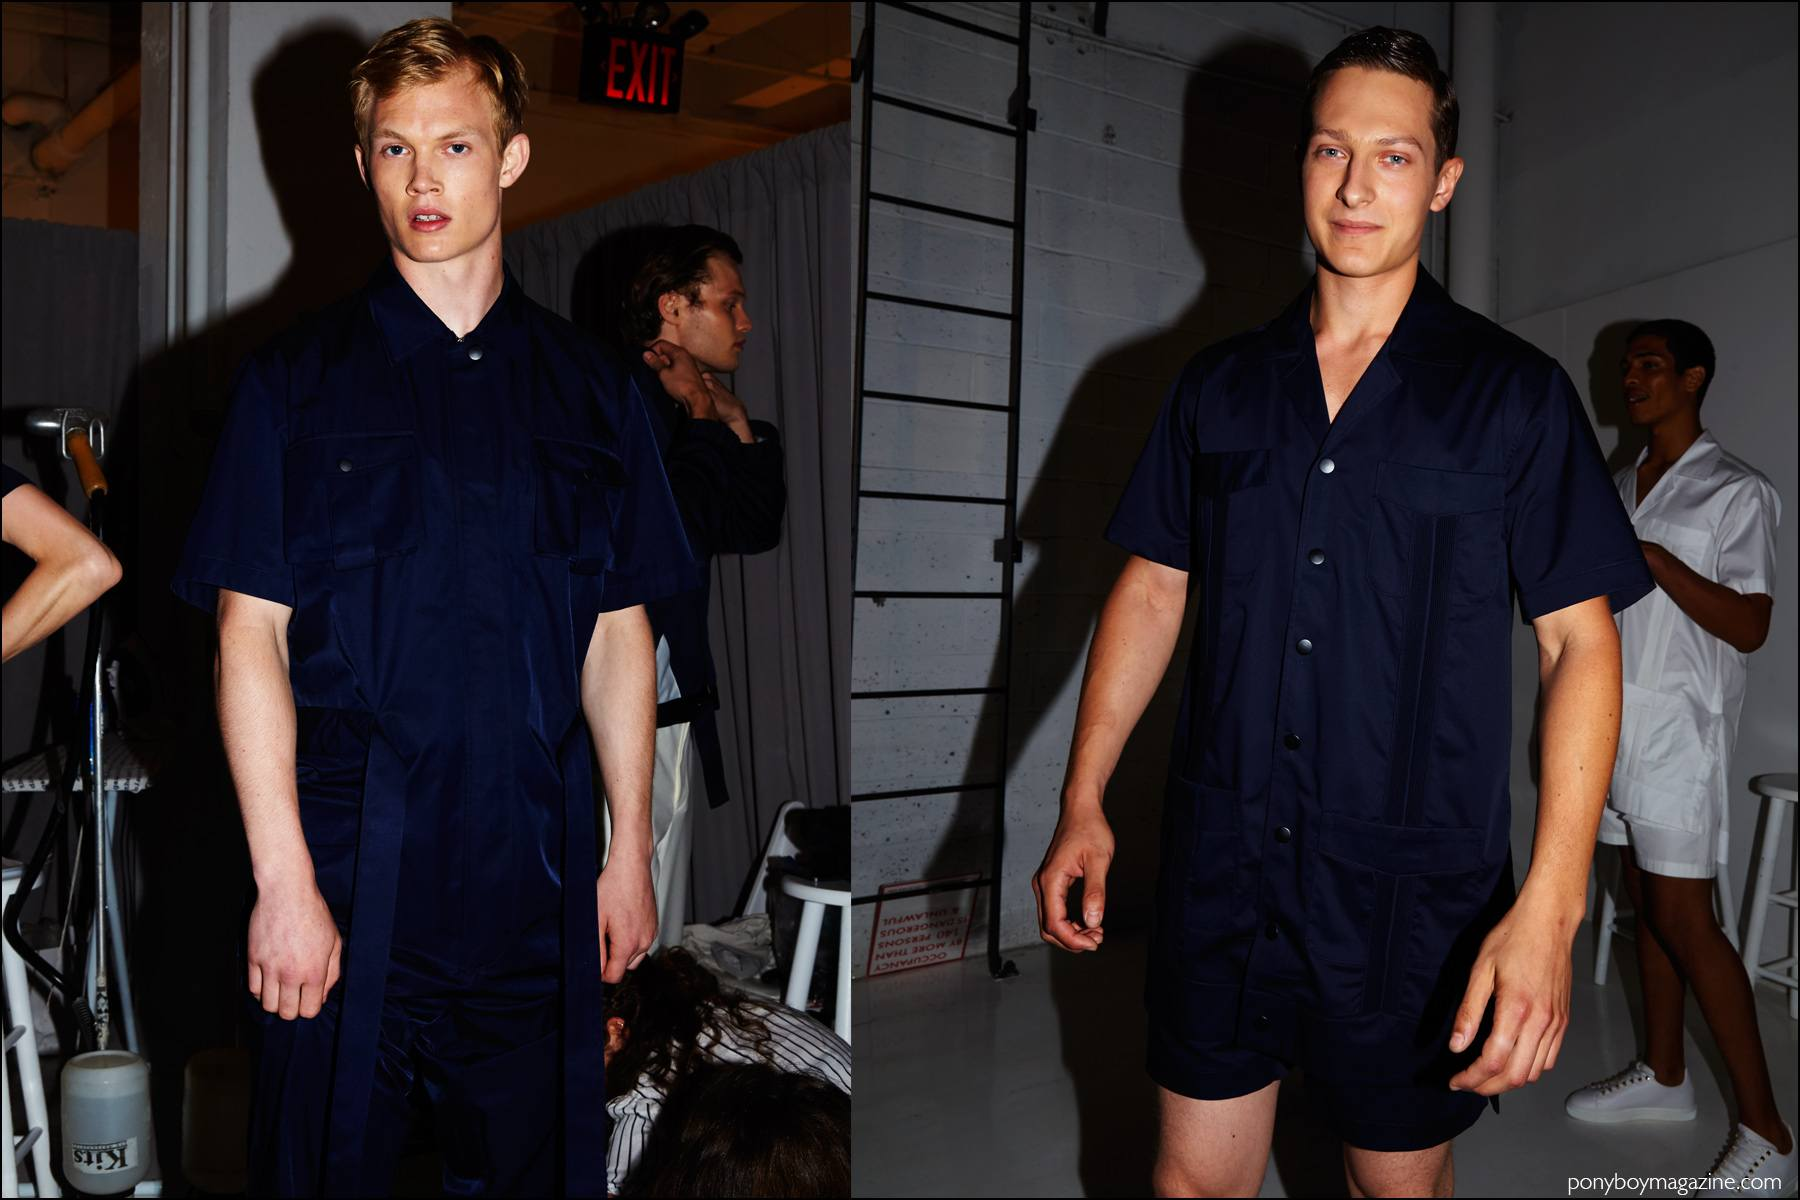 Models Alijah Harrison and Dmitry Brylev photographed backstage at Carlos Campos Spring/Summer 2017 menswear show. Photography by Alexander Thompson for Ponyboy magazine NY.